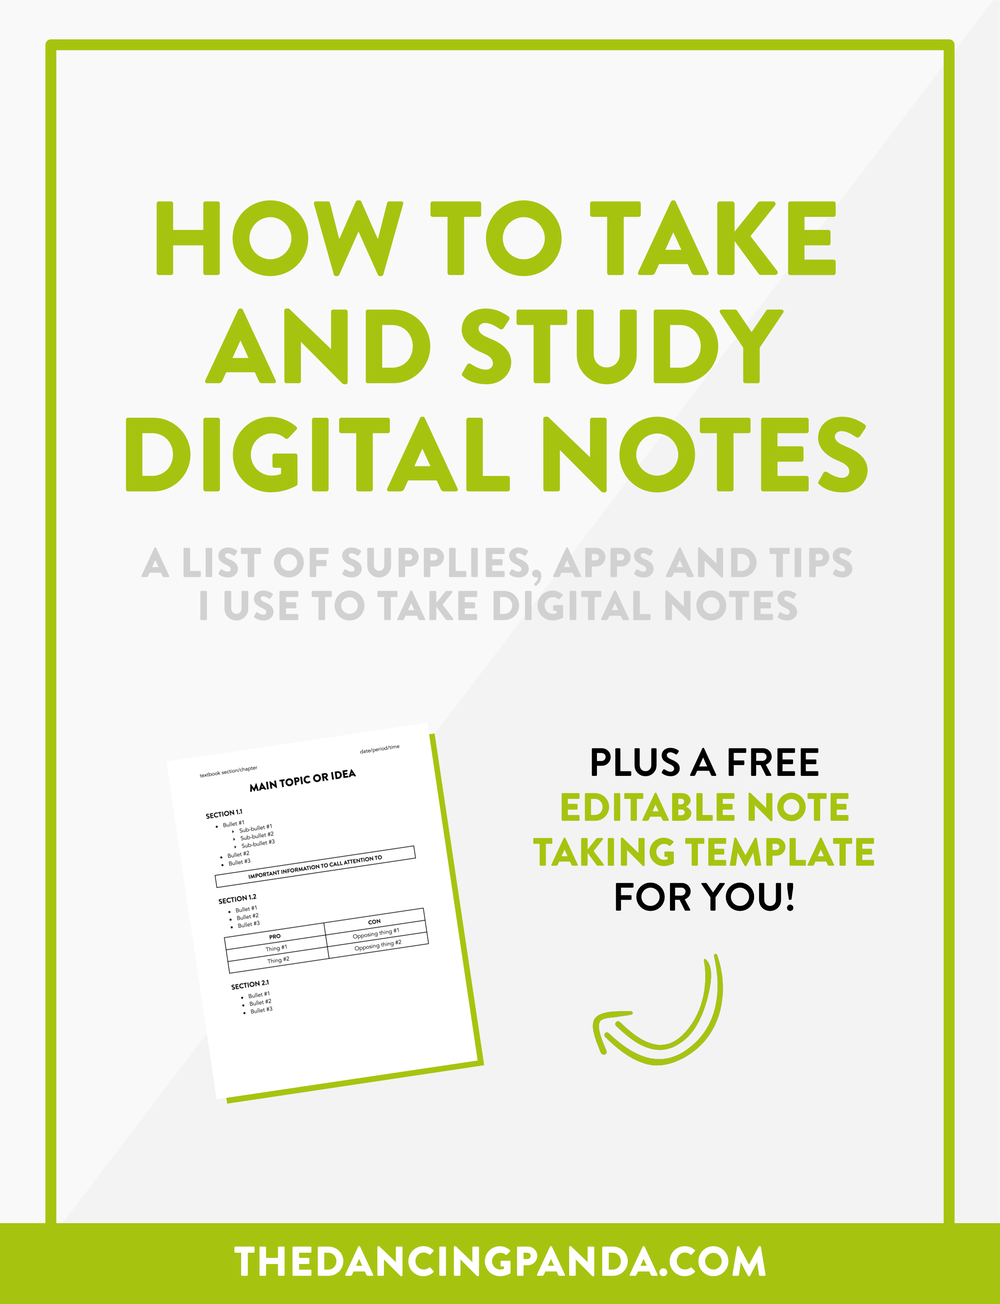 The Ultimate Guide to Taking and Studying Digital Notes (a Handbook for Students) >> thedancingpanda.com